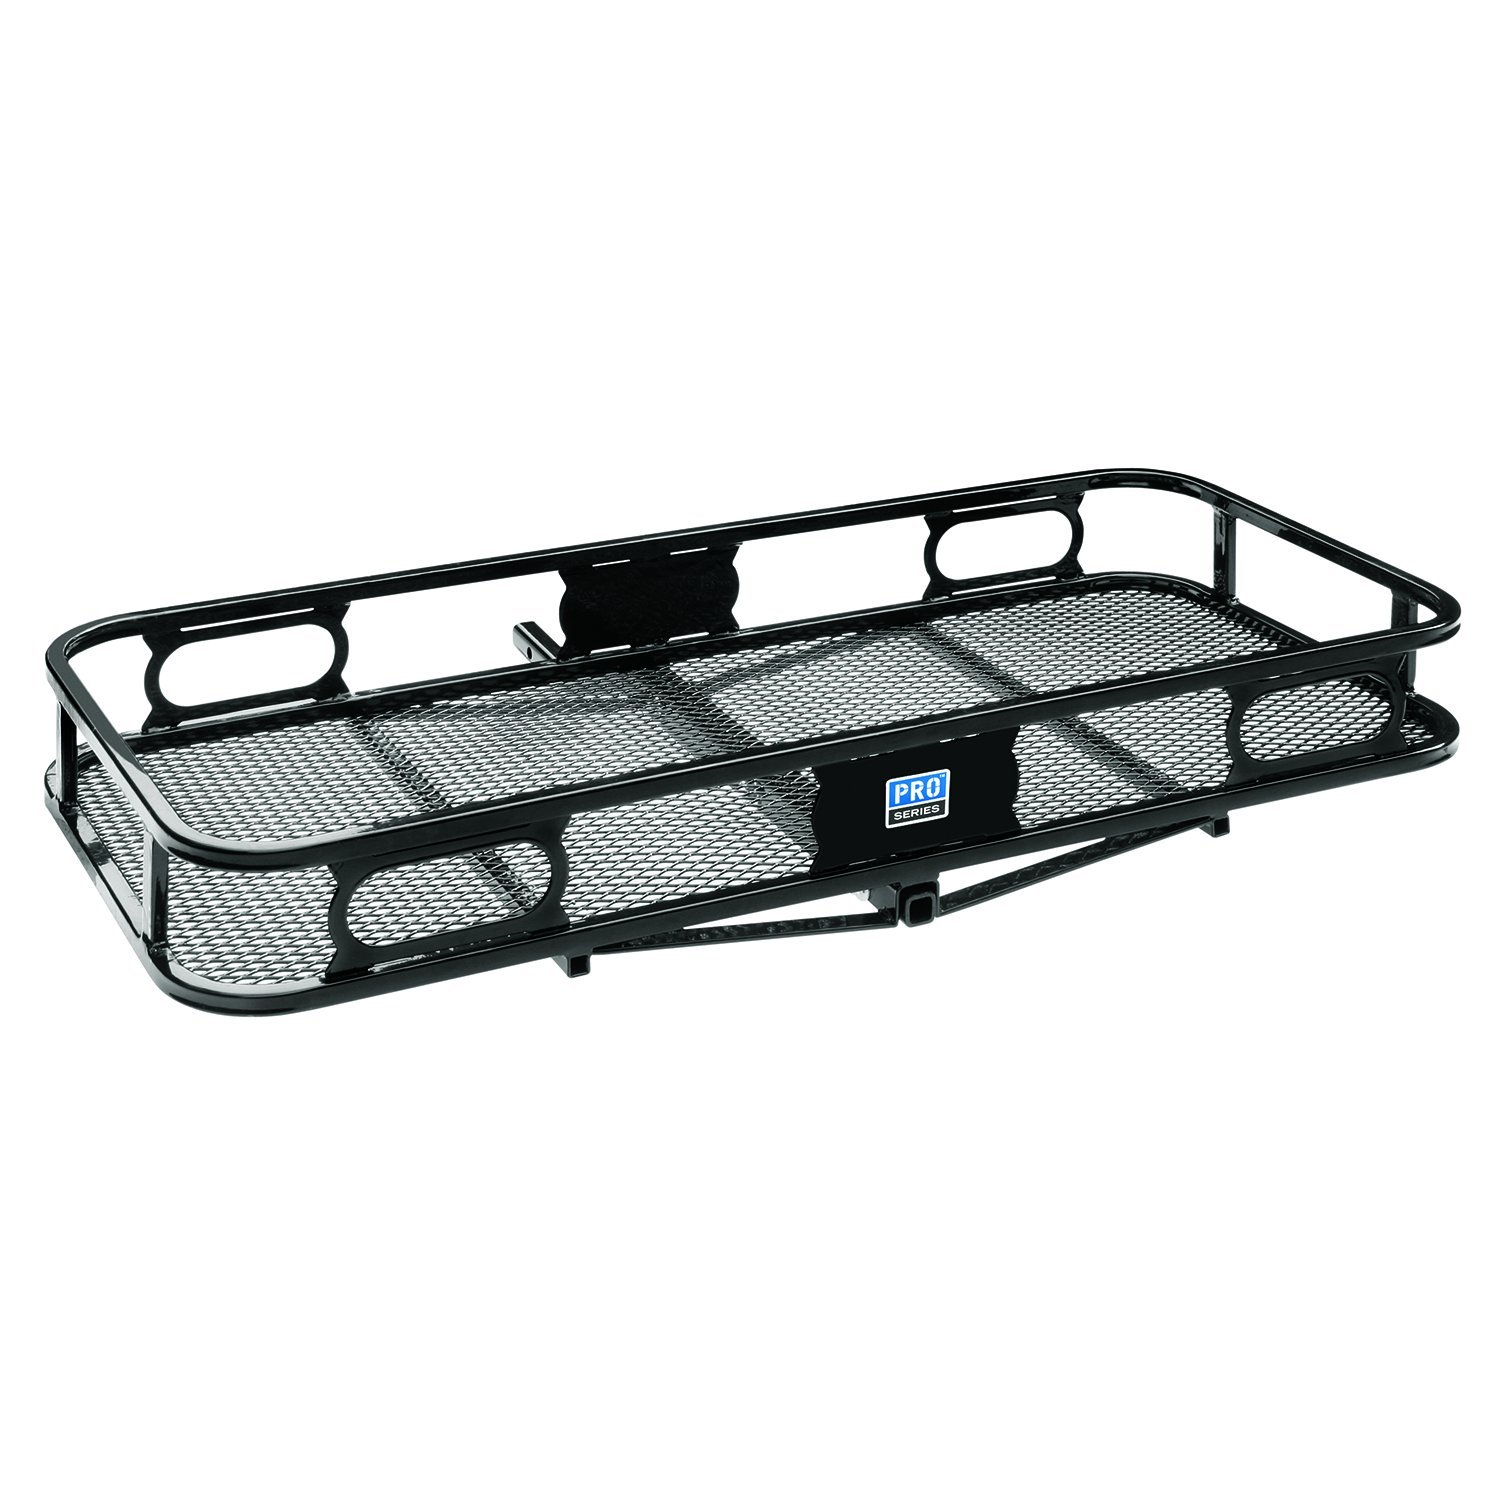 "Pro Series 63155 Rambler Hitch Cargo Carrier for 1-1/4"" Receivers by Pro Series"